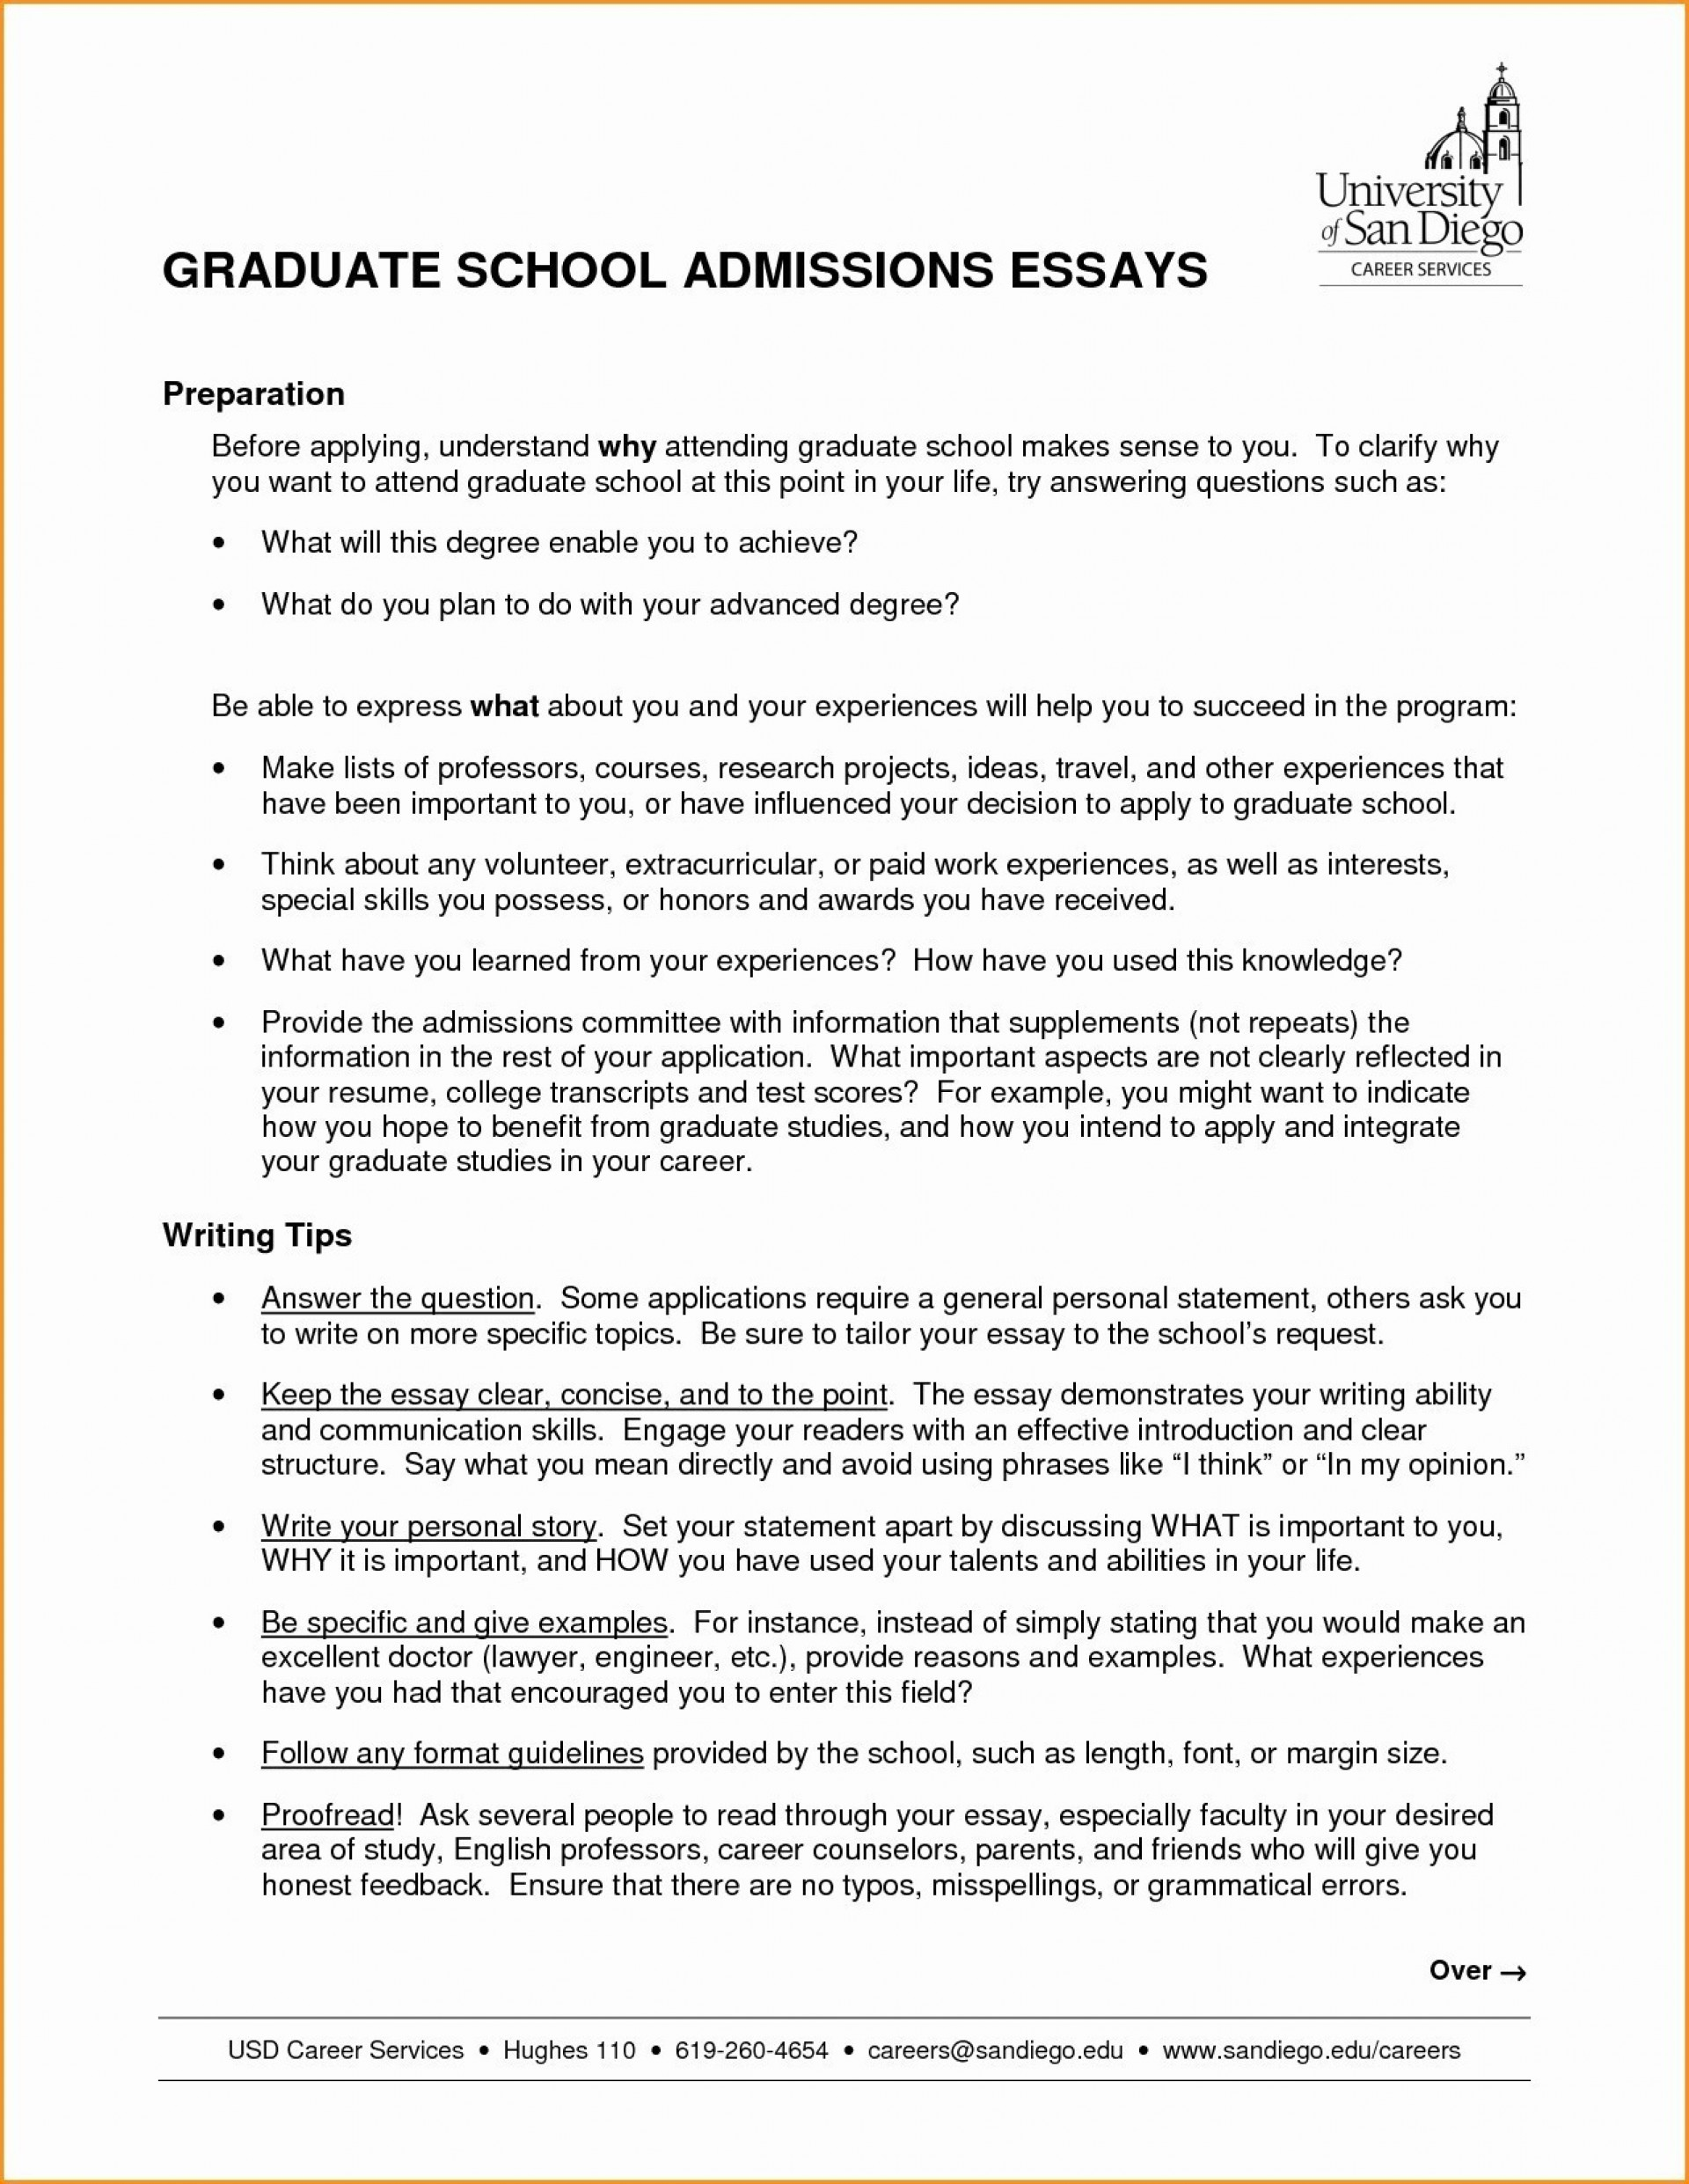 020 Essay Example Standard Format Writing Personal Latest Student Valid Elegant Recent Graduate Cover Letter Impressive For College Apa Essay/report Ielts 1920